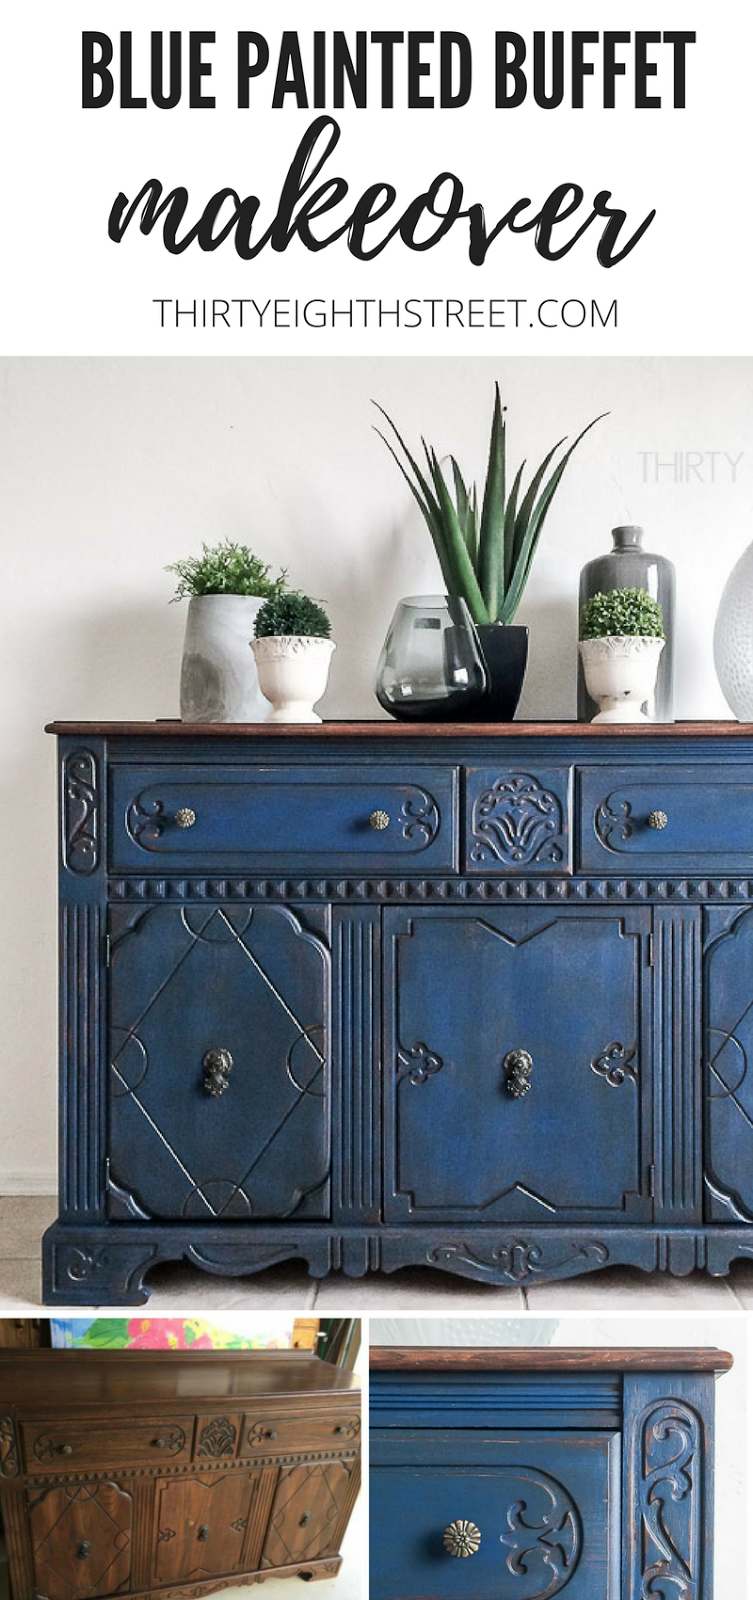 blue painted buffet makeover thirty eighth street. Black Bedroom Furniture Sets. Home Design Ideas